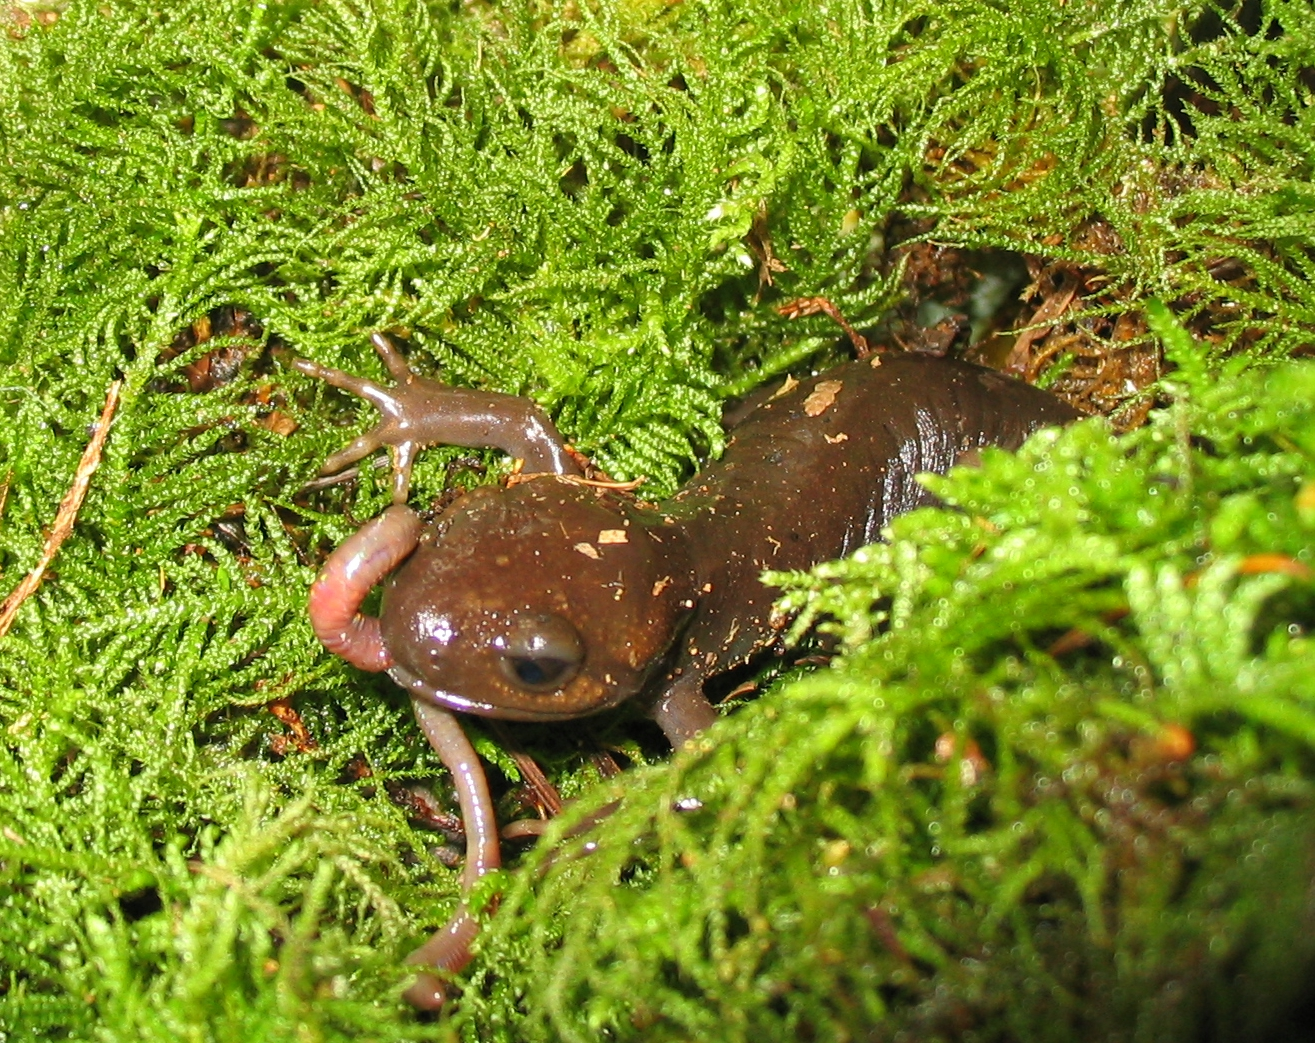 Insect Pacific_brown_salamander_eating_a_worm.jpg